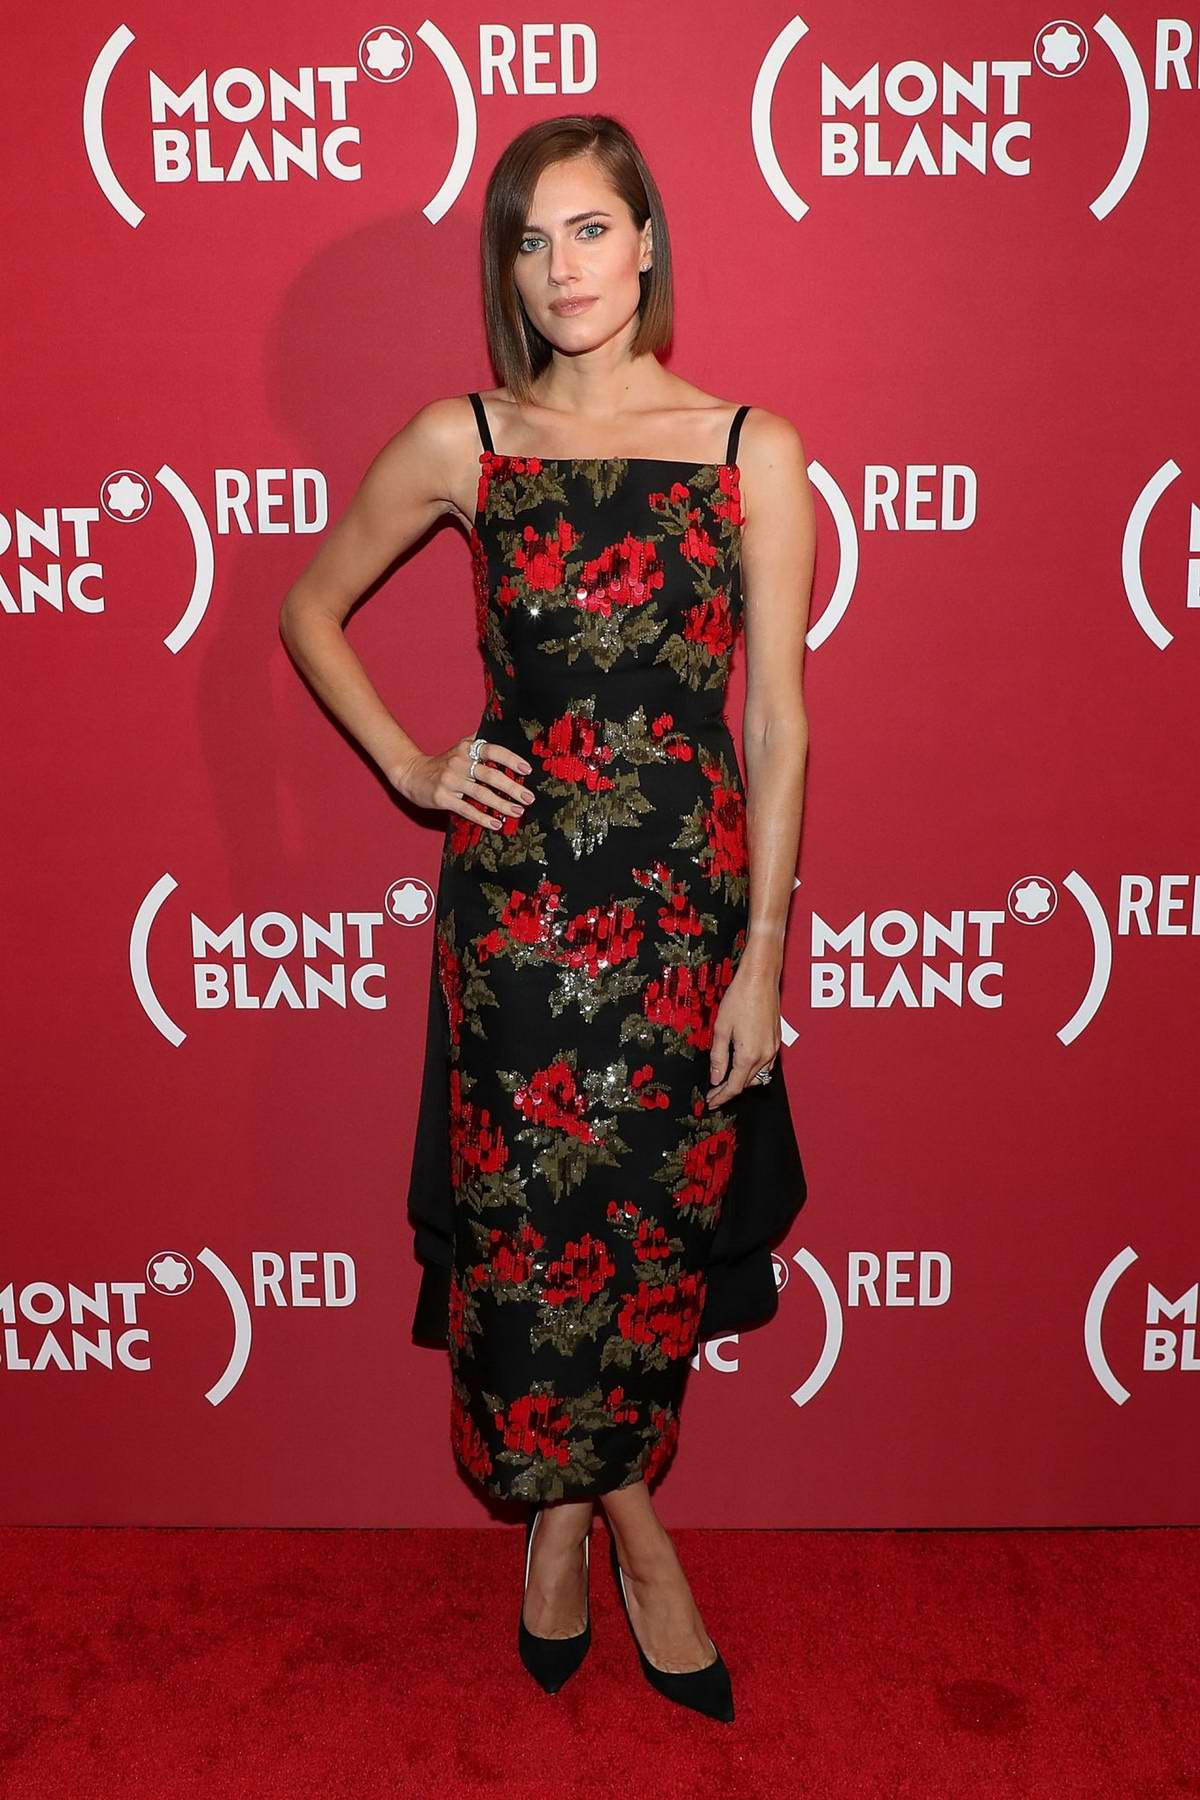 Allison Williams attends as Montblanc And (RED) Launch The New (Montblanc M)RED Collection To Fight AIDS in New York City